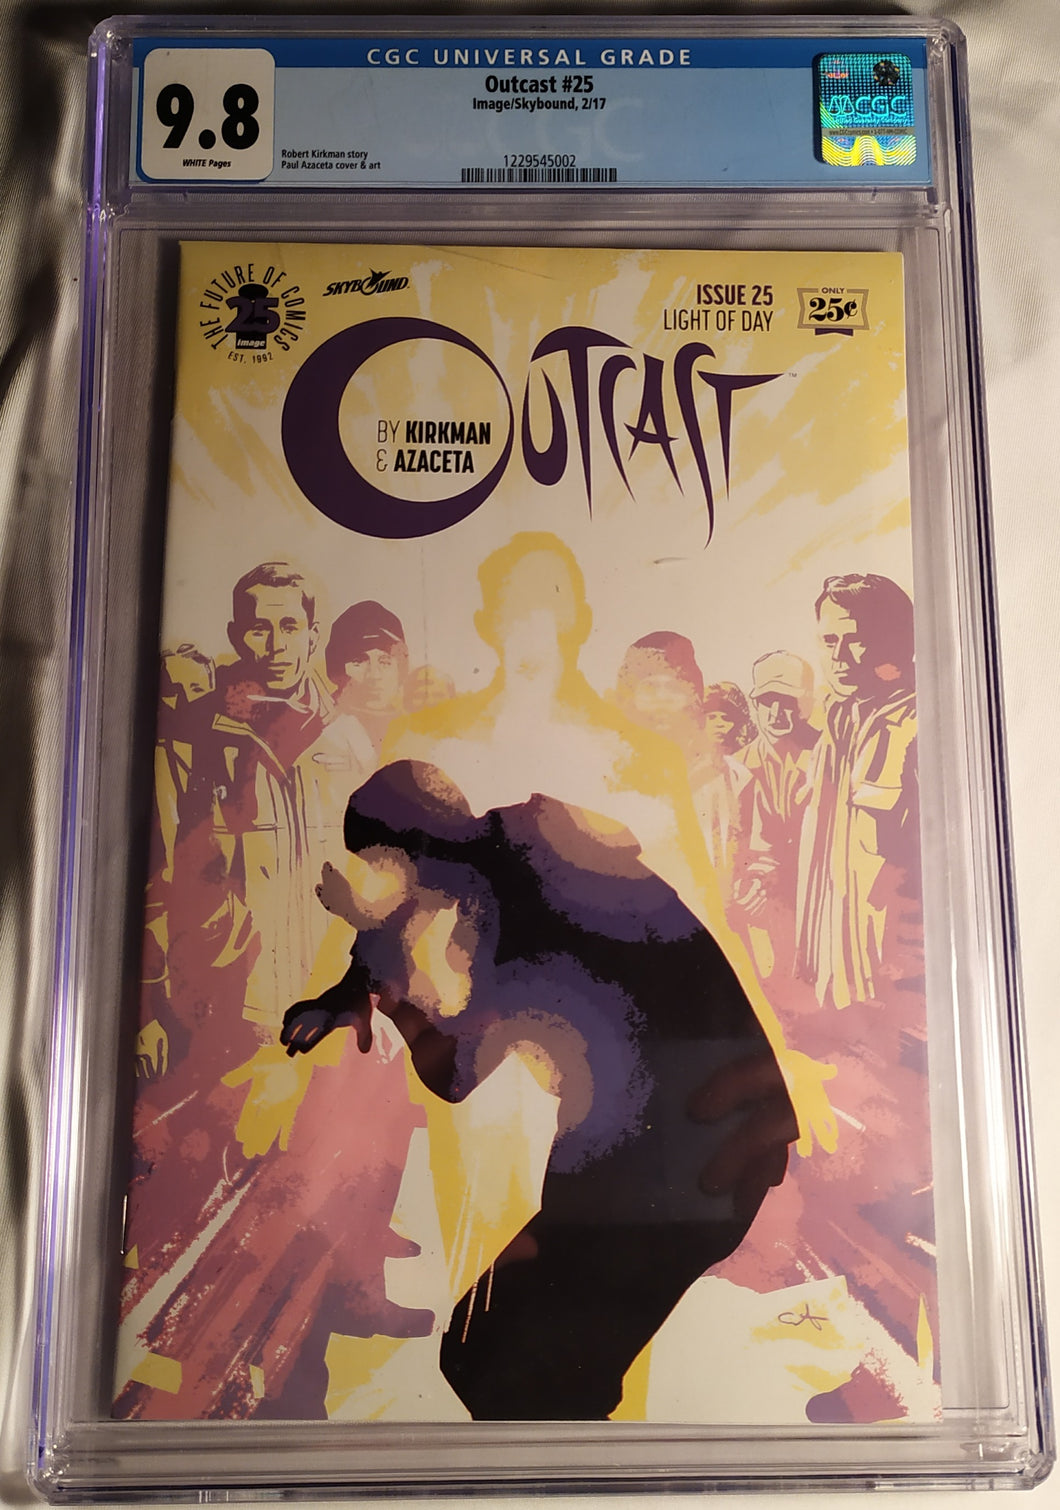 Outcast #25 Graded 9.8 NM By CGC!